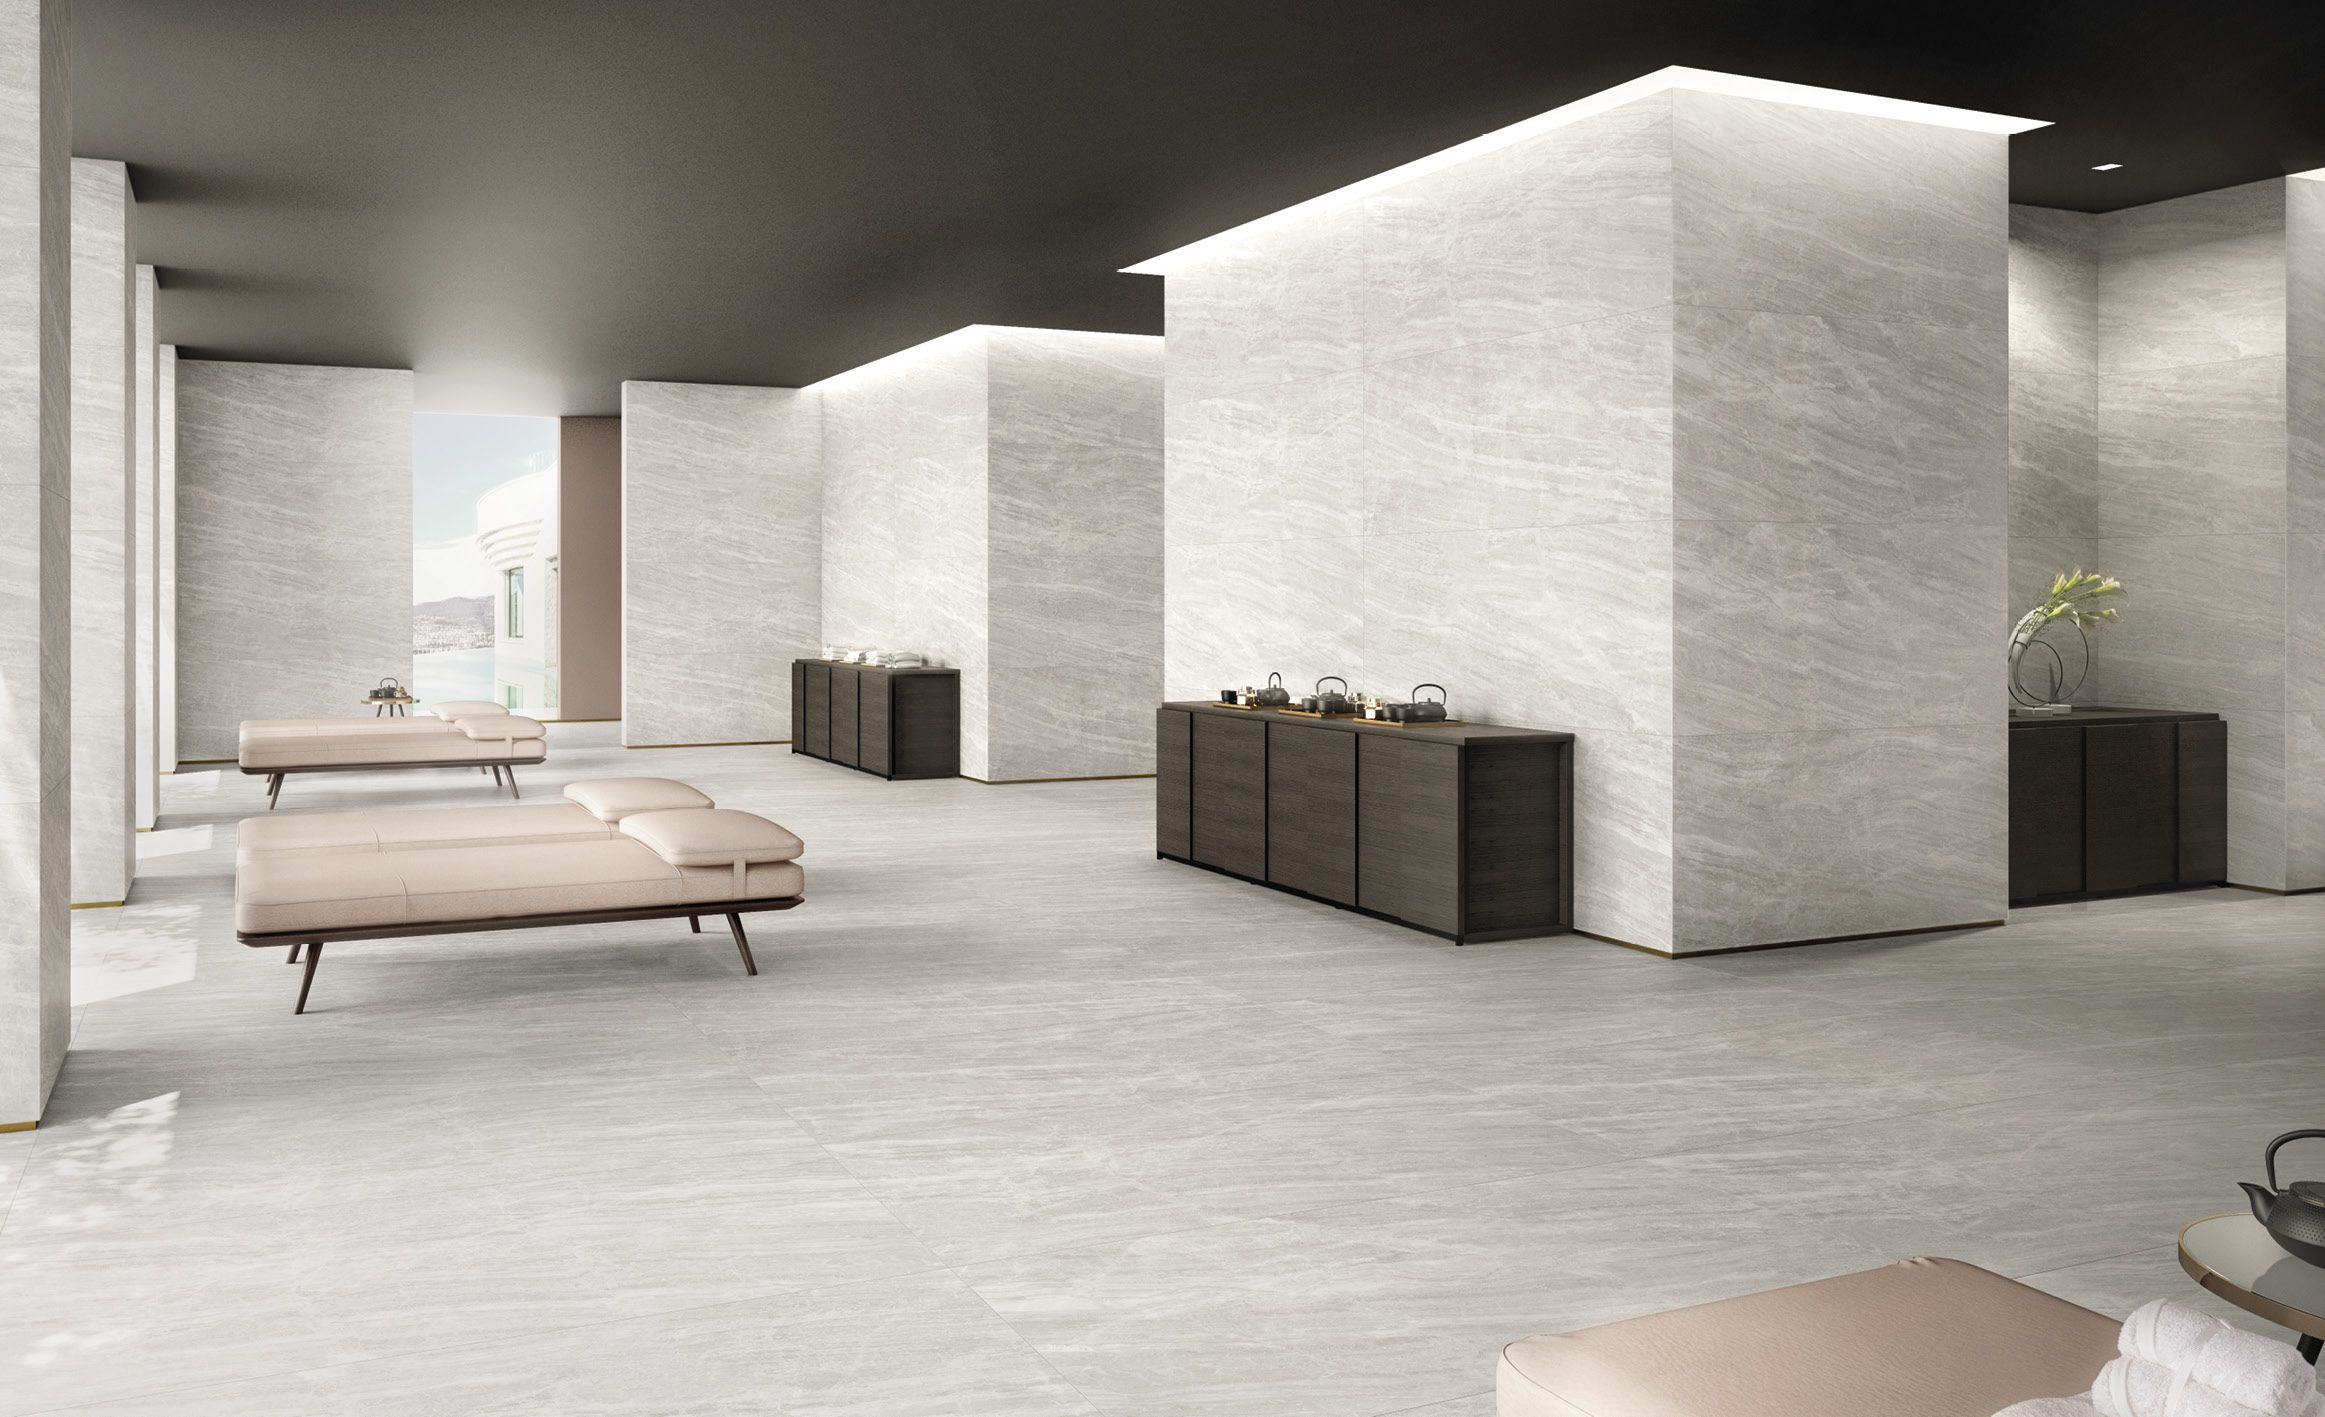 Pin By Galleria Ceramica On Commercial Area Tile Ideas Sophisticated Tile Cosmic Home